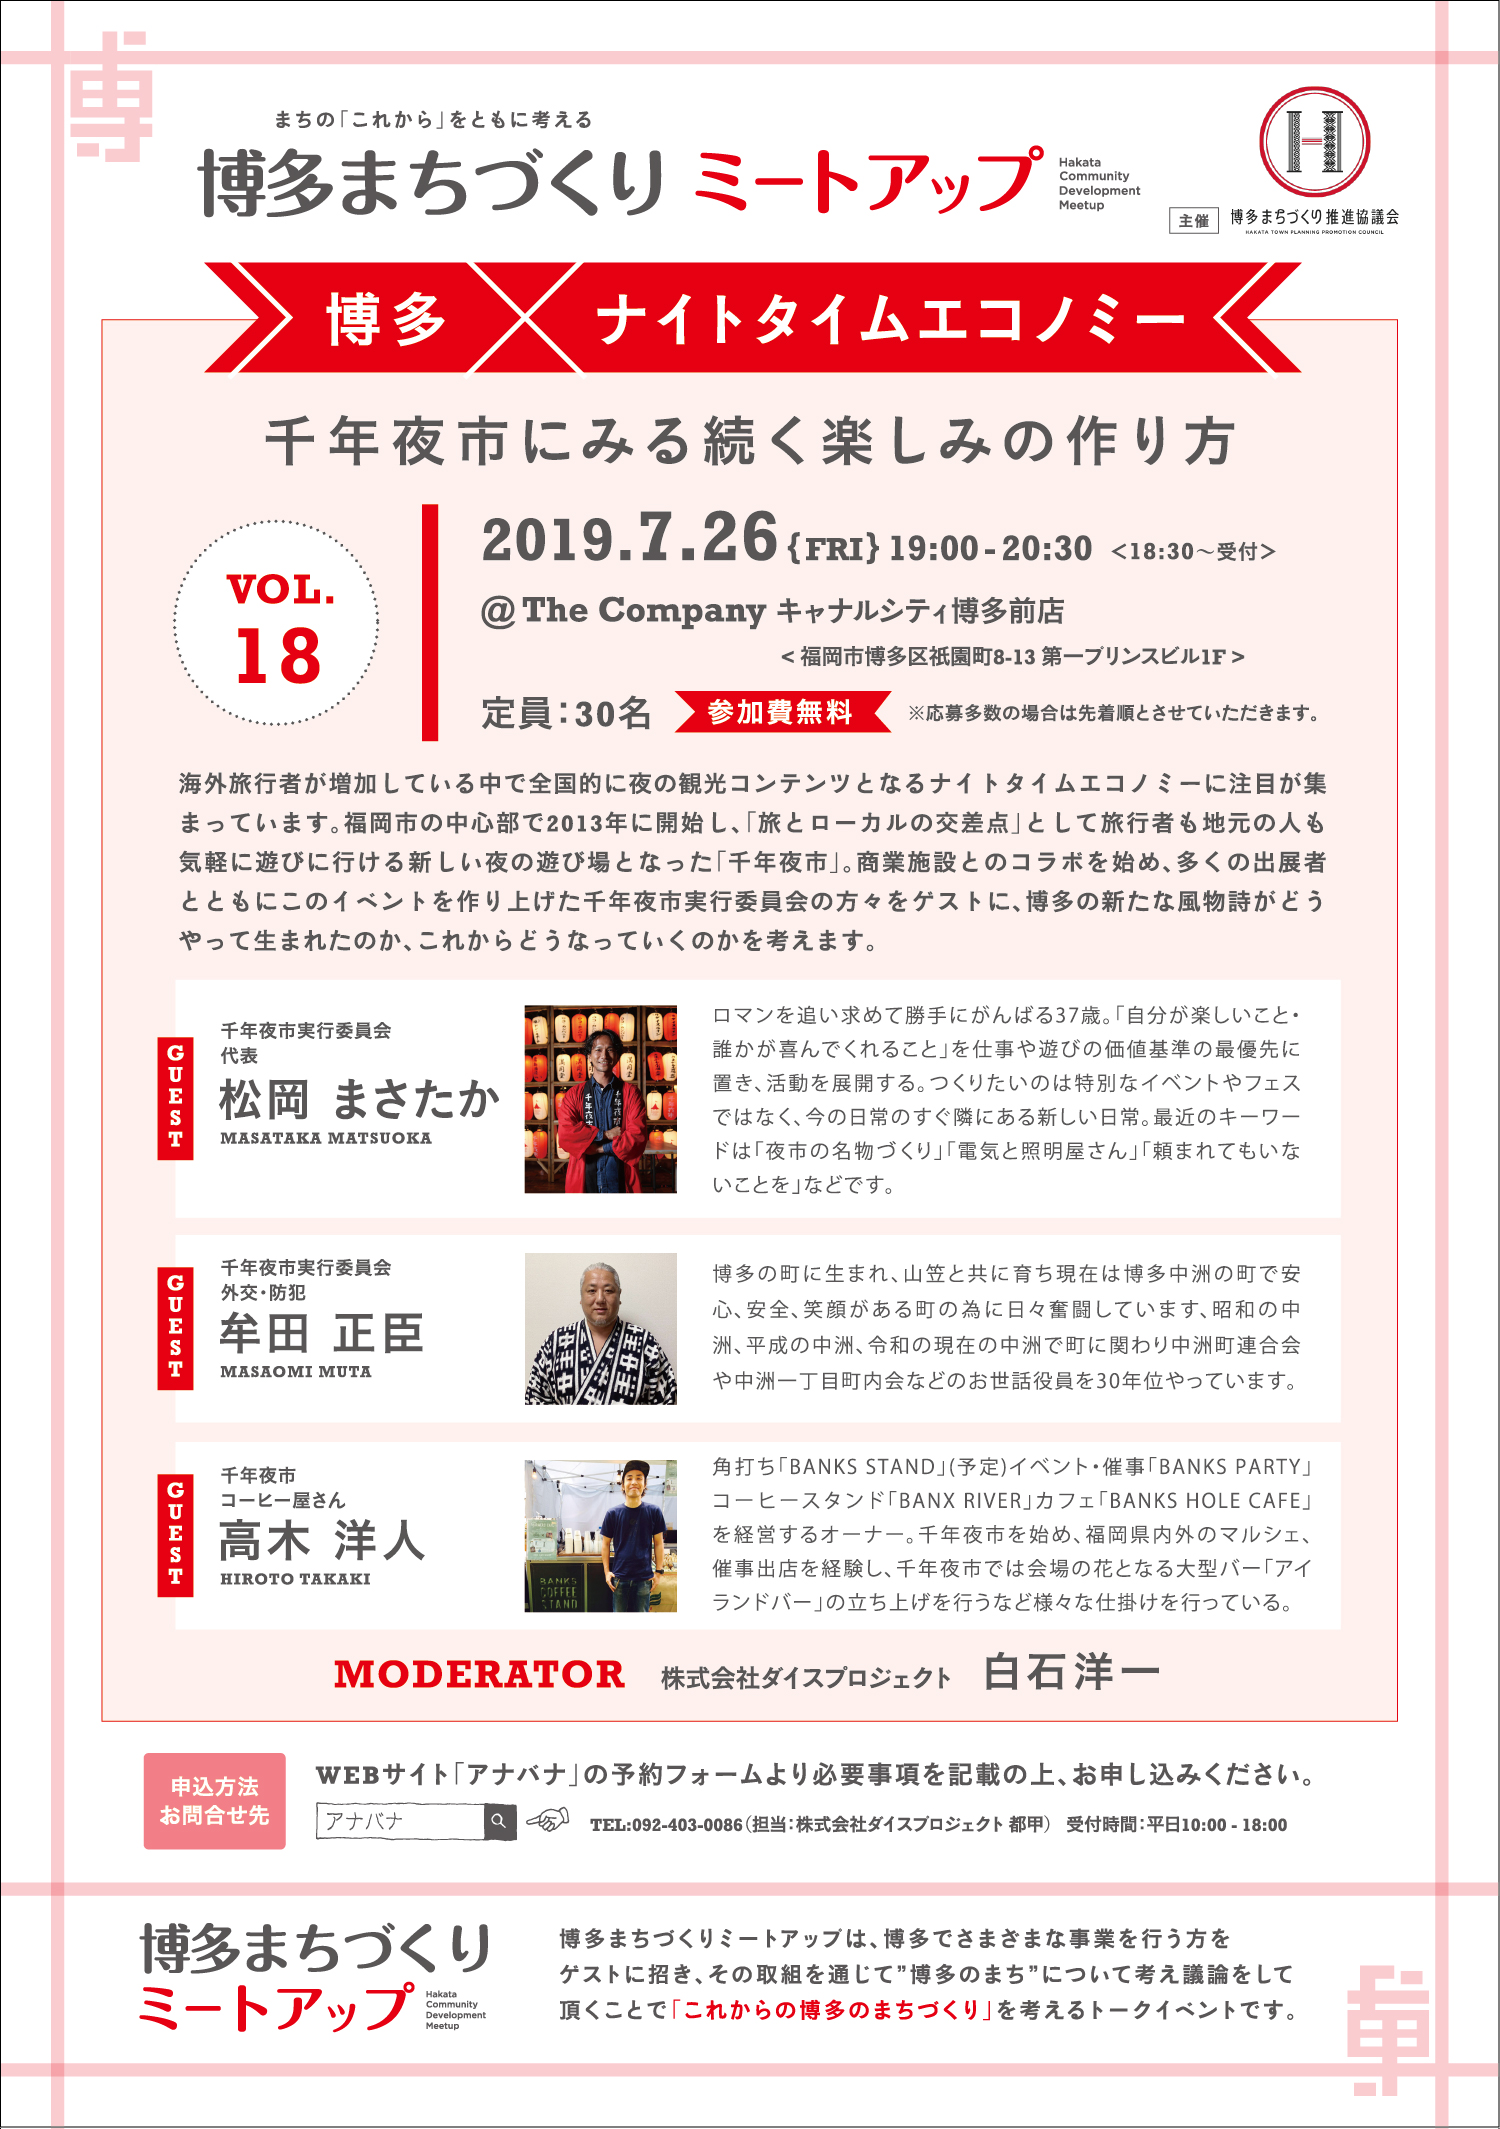 190716_meetup_flyer_vol18